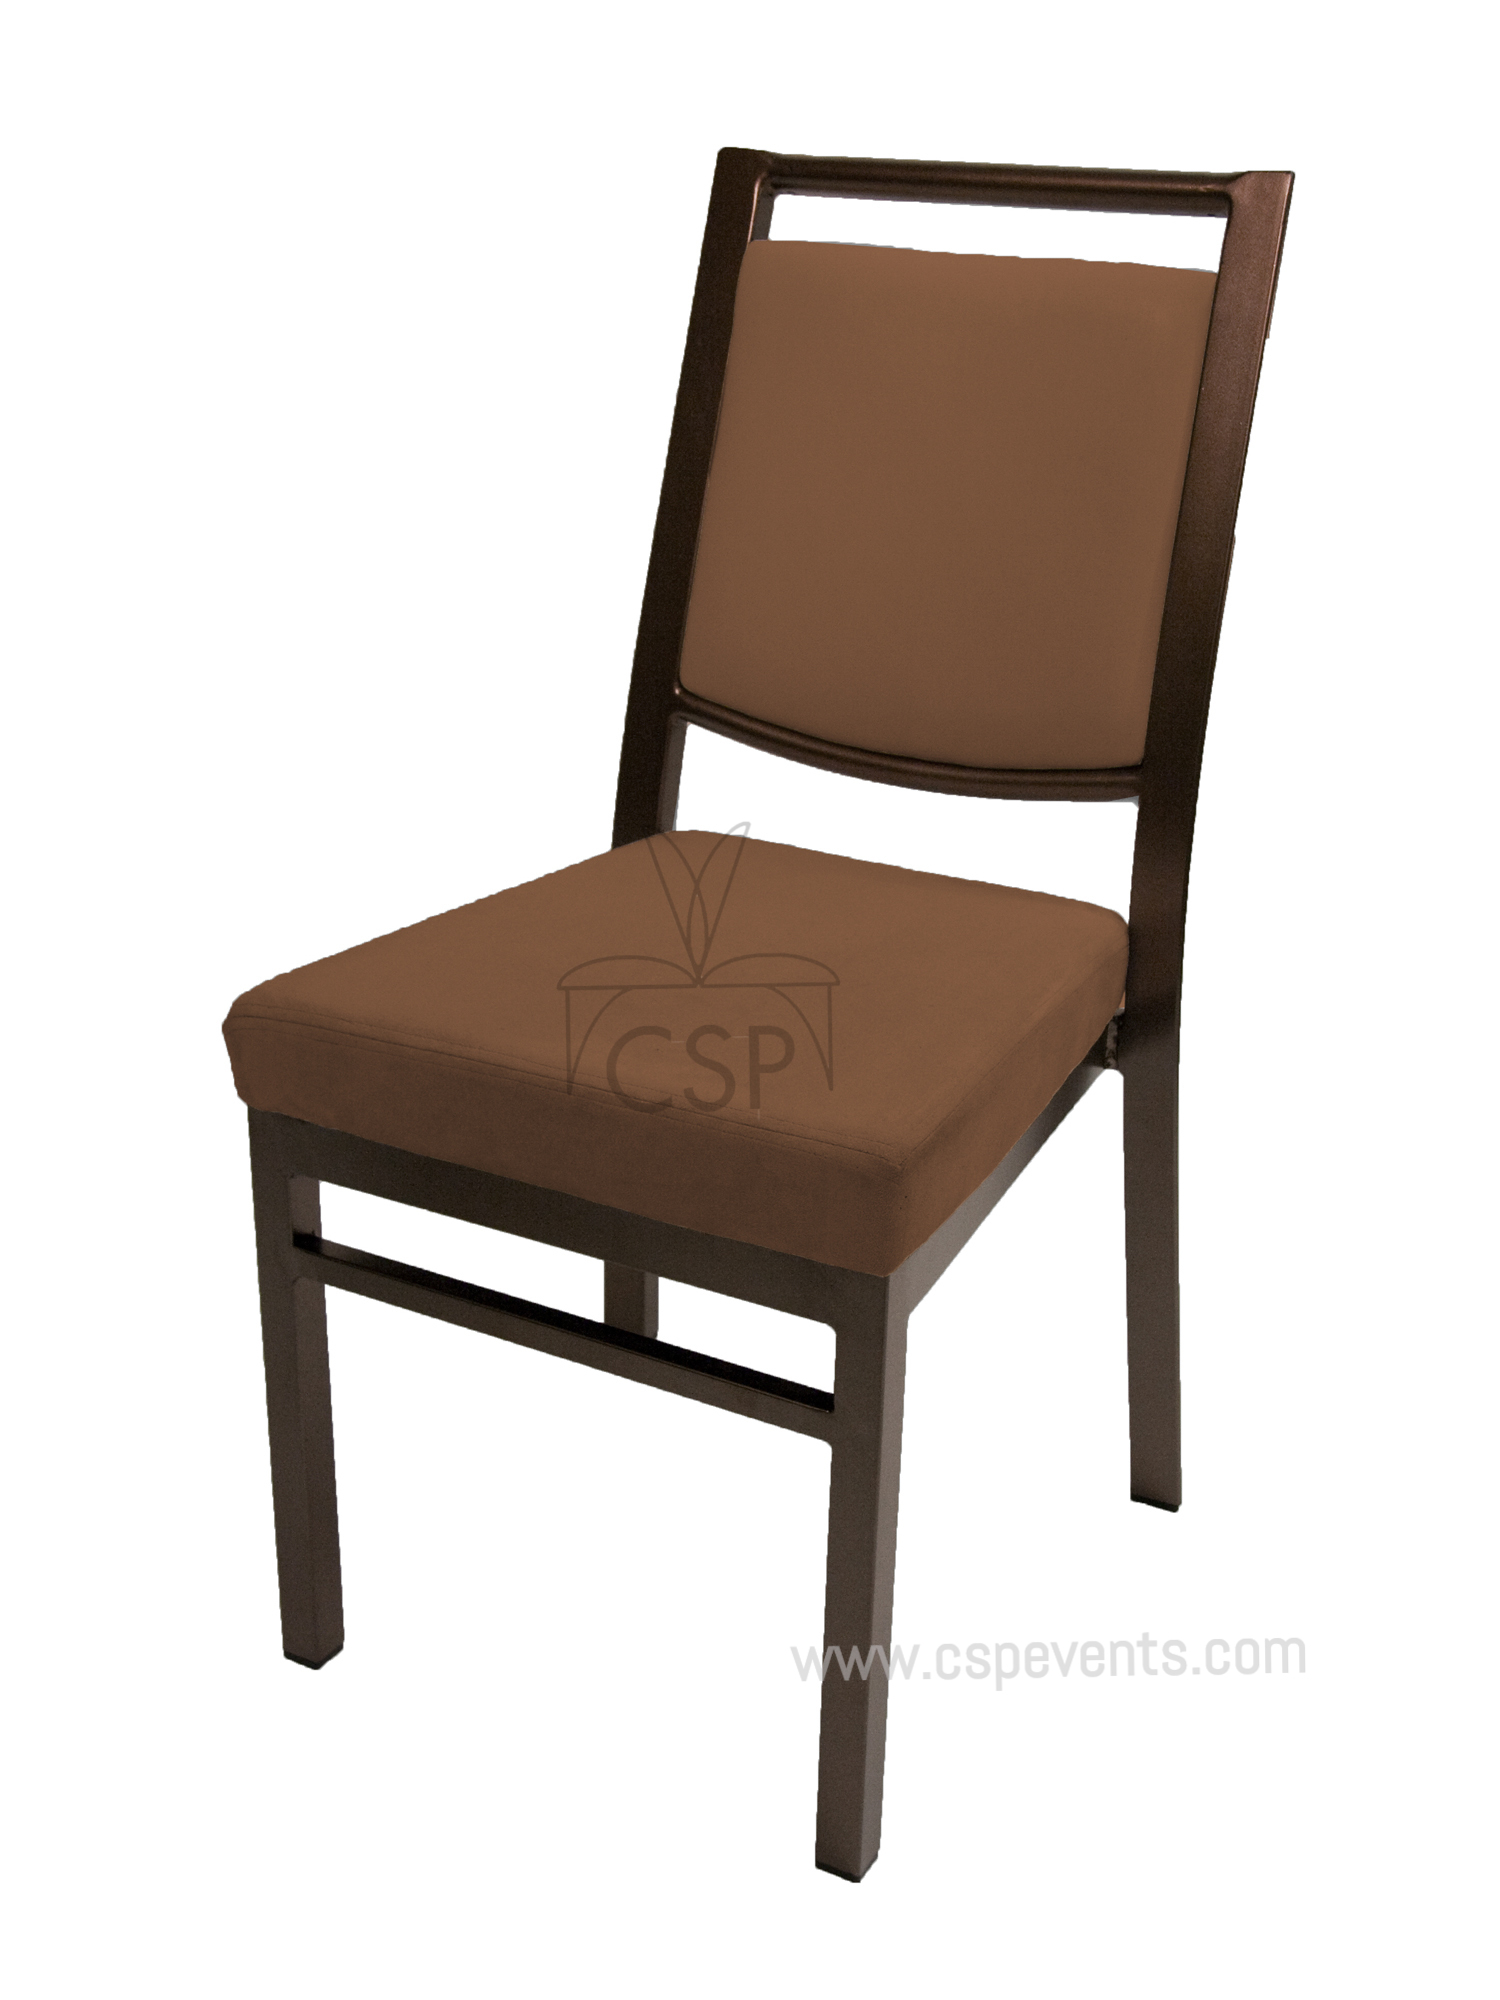 wood stacking metal side furniture for ideas banquet pic chairs and fixed chair fascinating inspiration